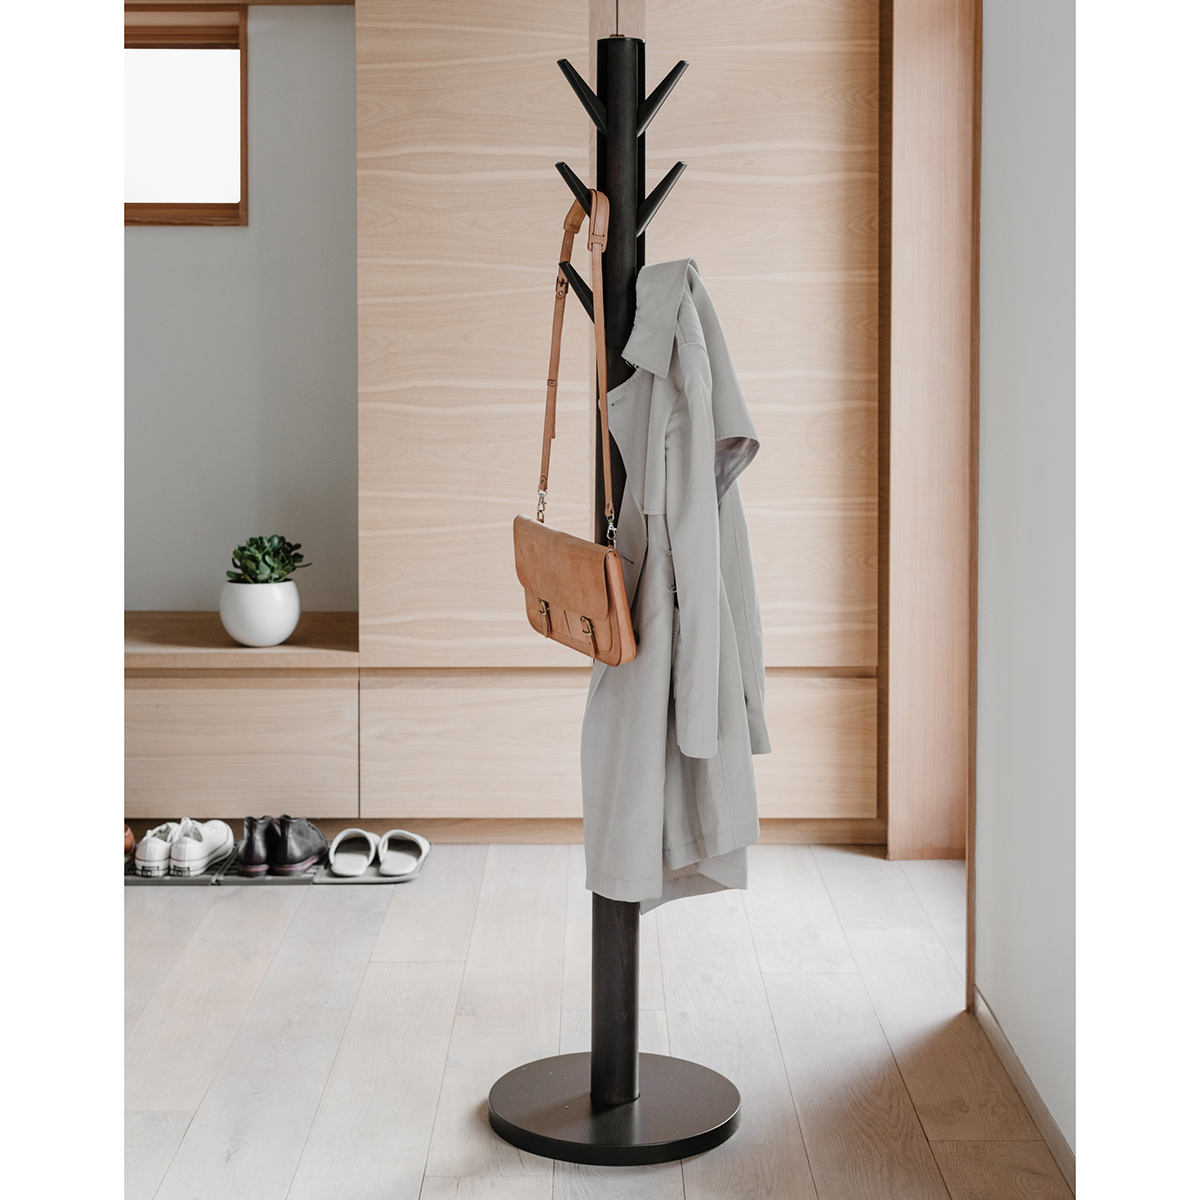 Umbra Walnut Flapper Coat Rack